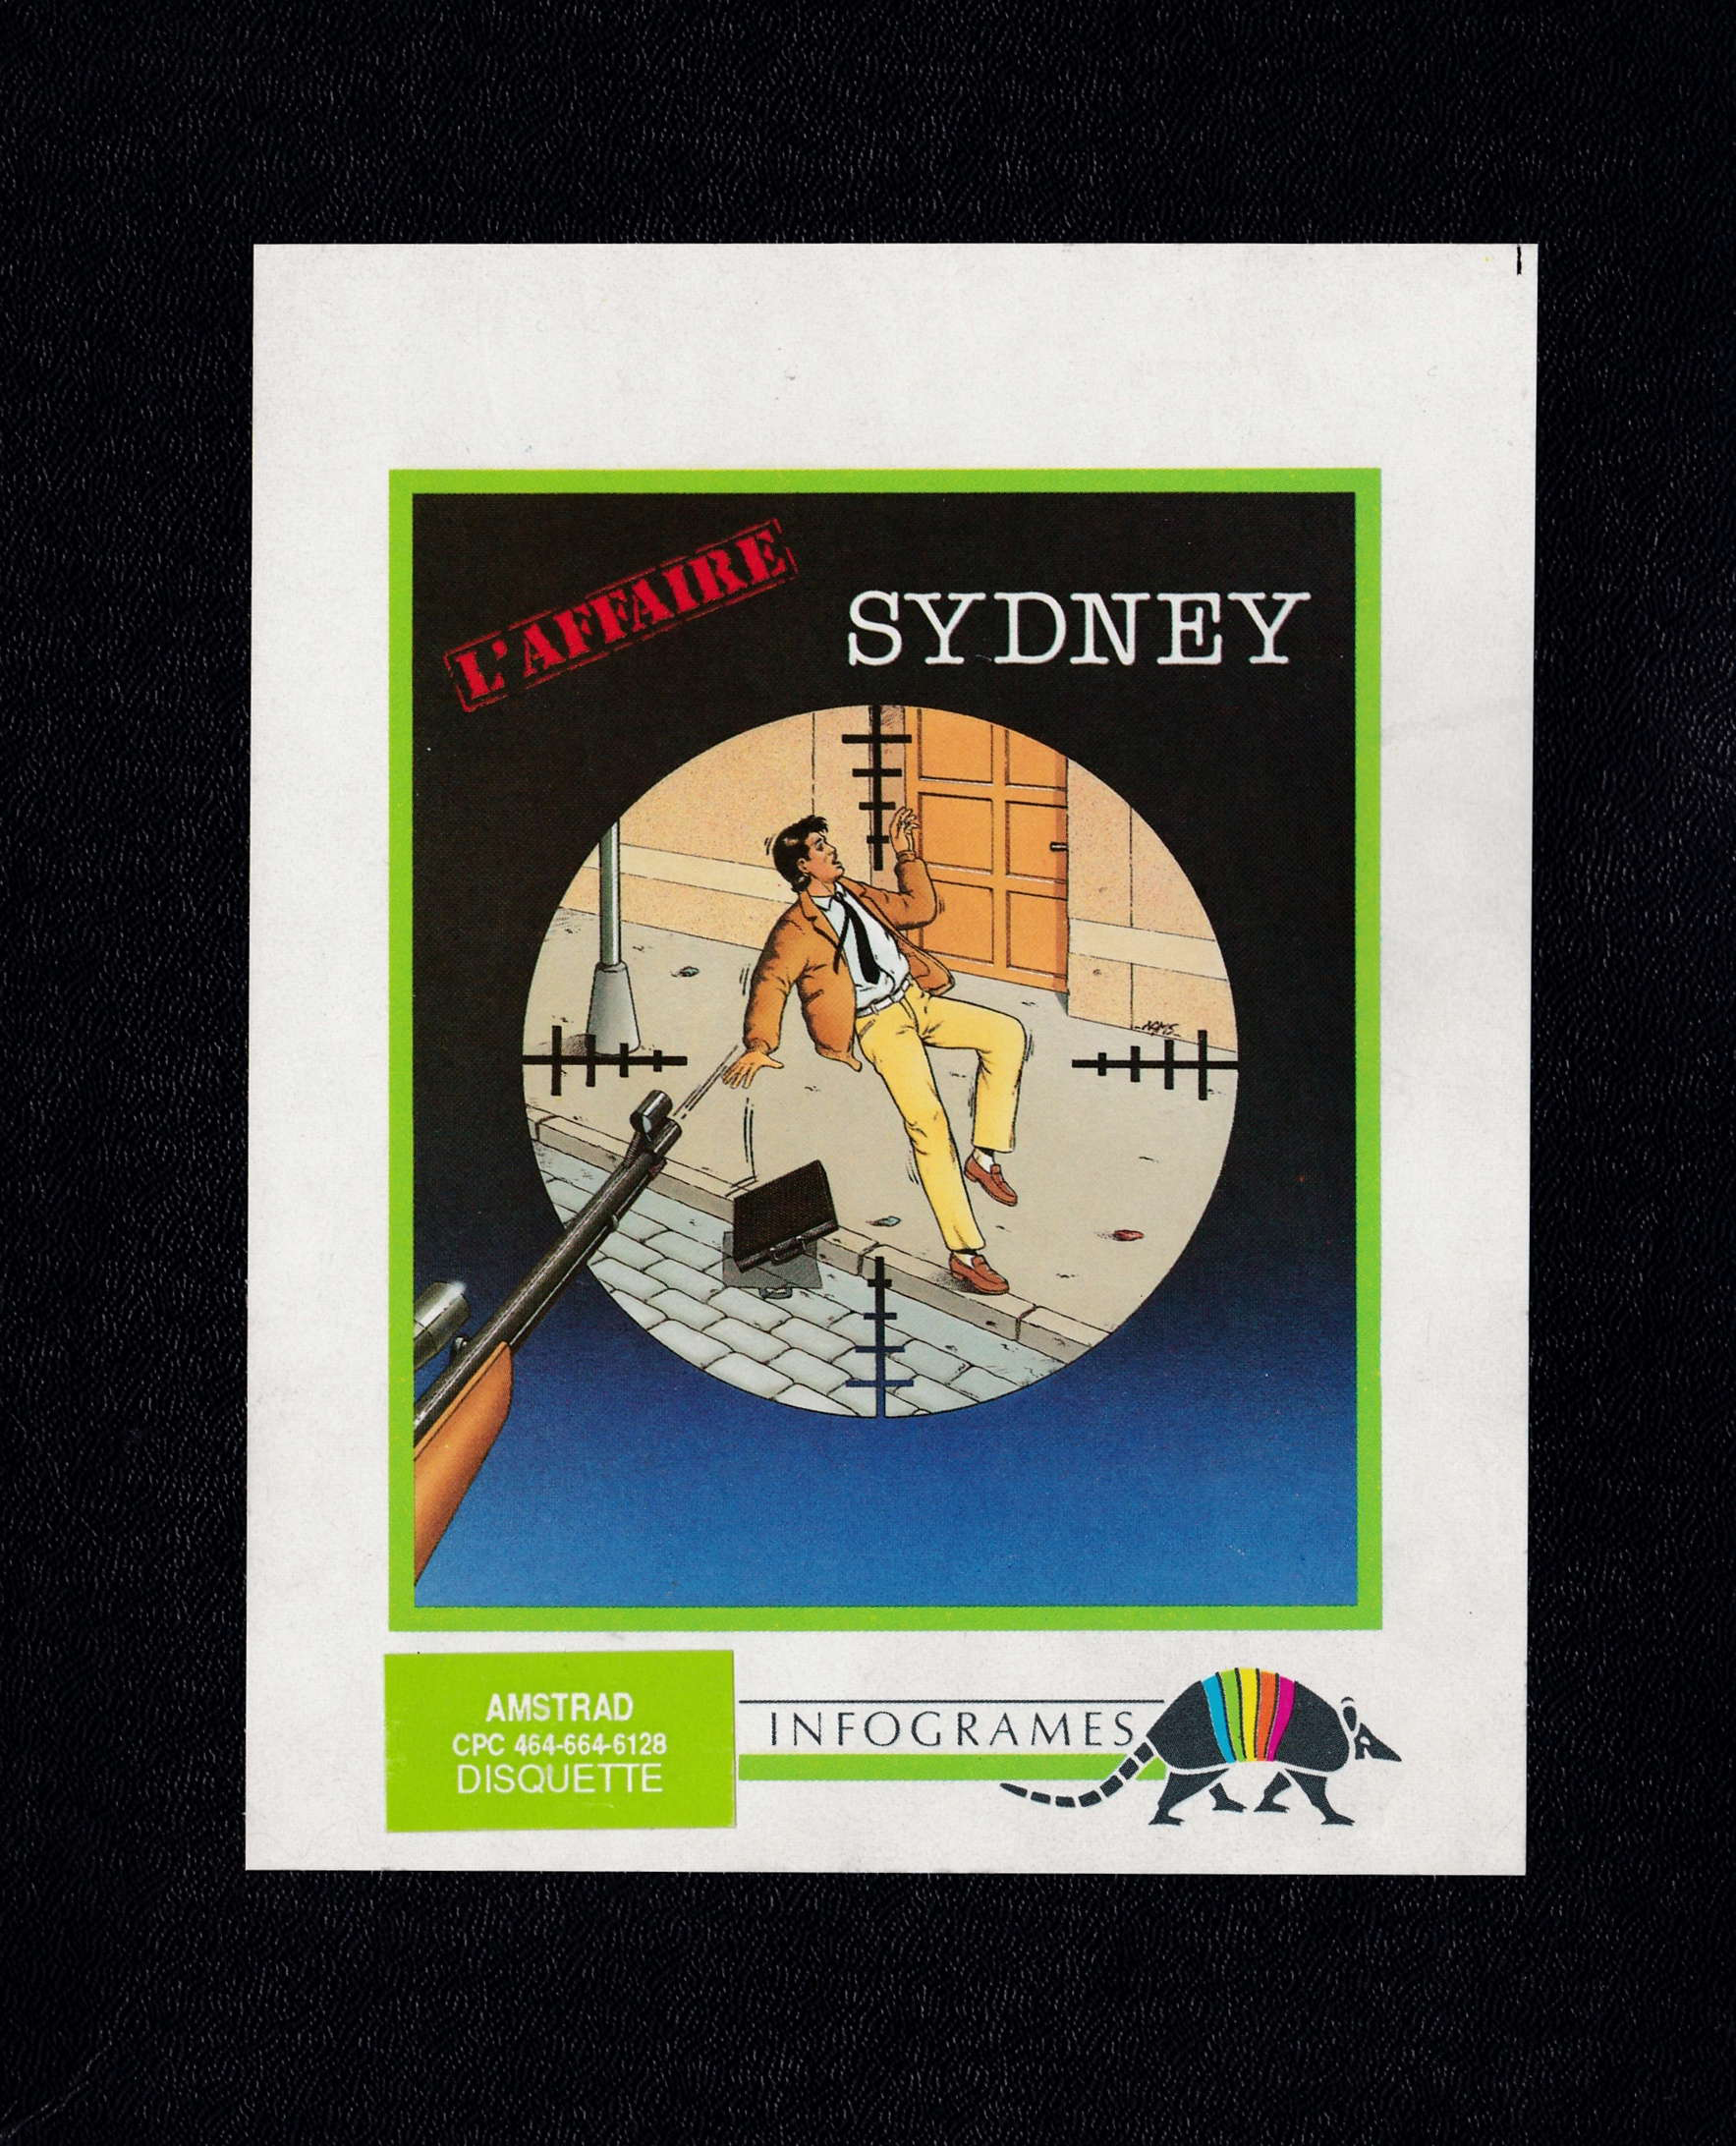 screenshot of the Amstrad CPC game Affaire sydney (l') by GameBase CPC